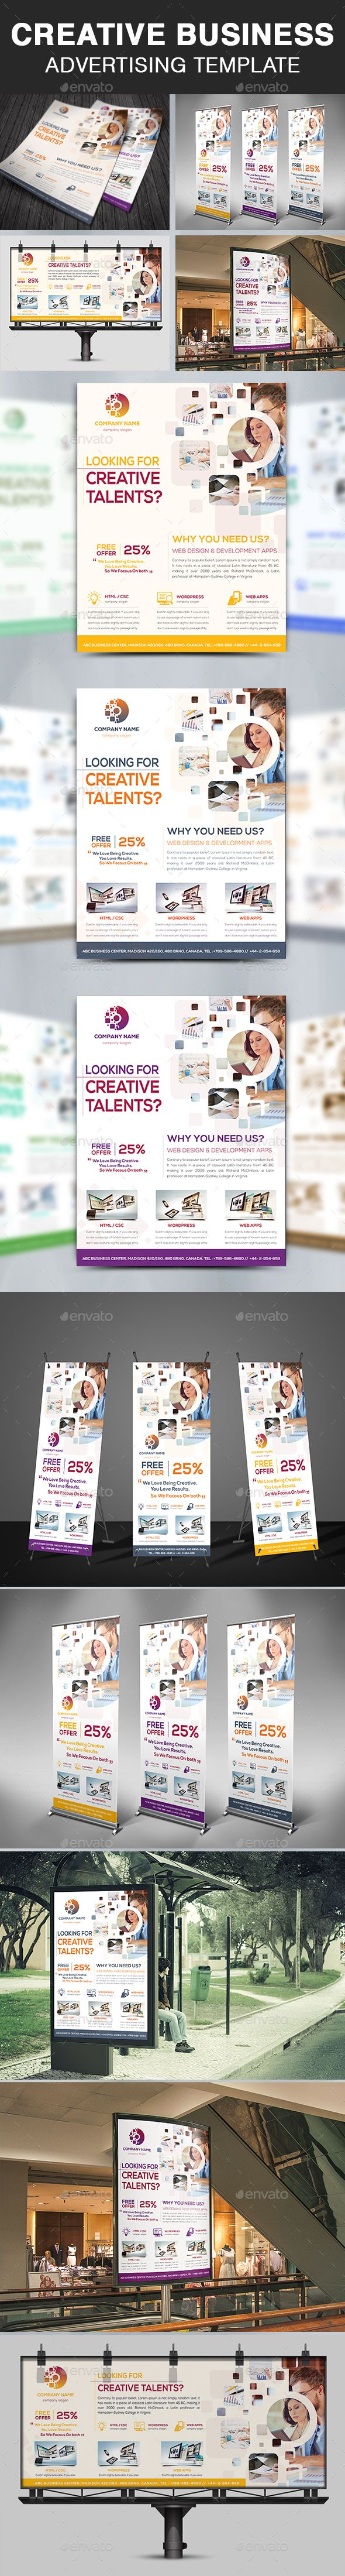 Creative Business Advertising Template #mobile app designer #agency  • Download here → https://graphicriver.net/item/creative-business-advertising-template/20823737?ref=pxcr